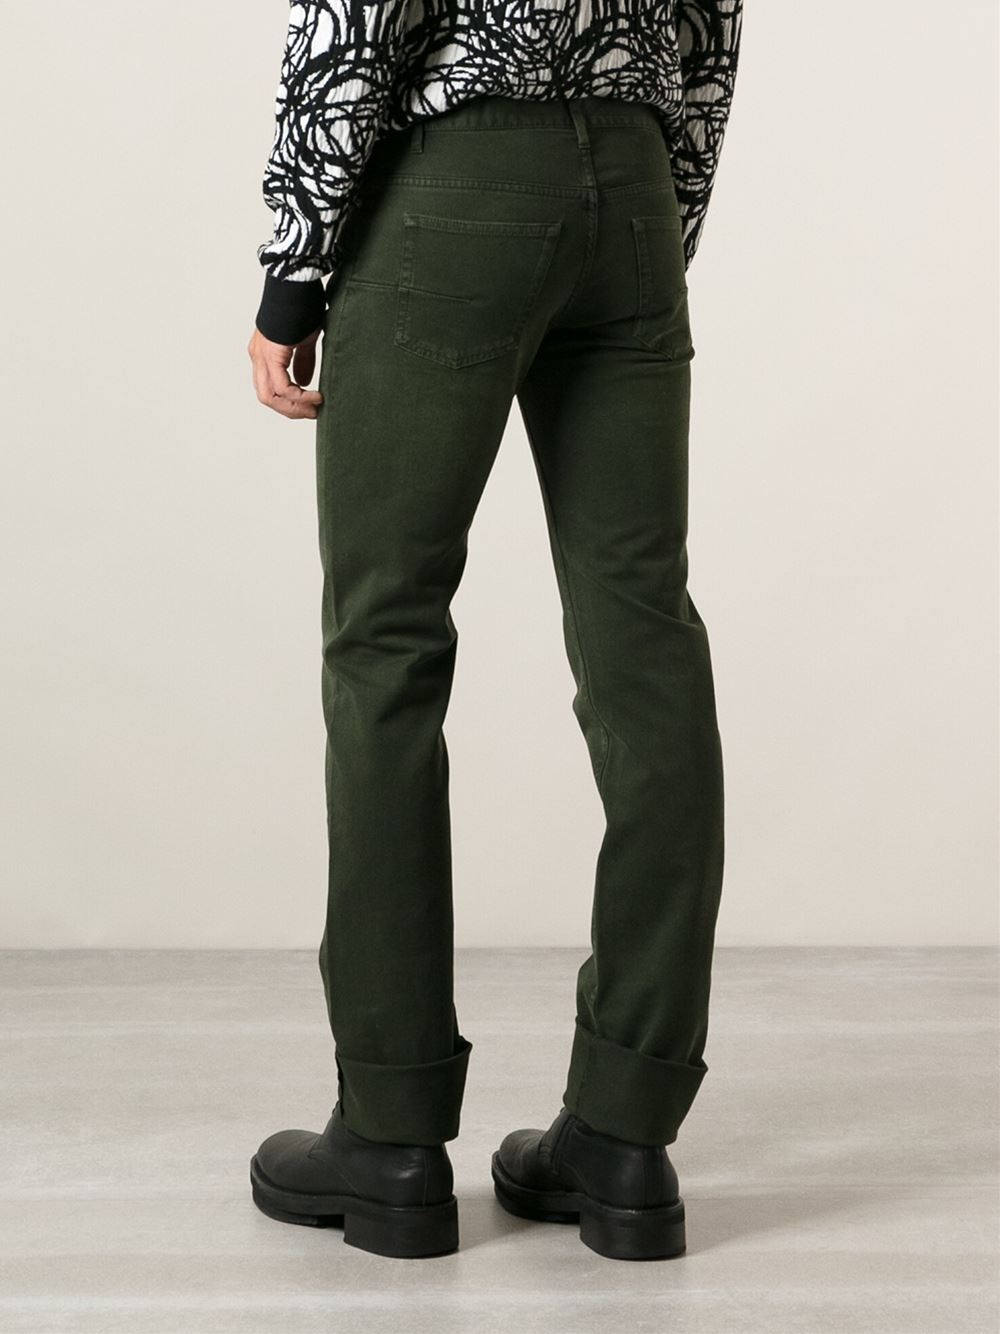 lyst dior homme slim fit jeans in green for men. Black Bedroom Furniture Sets. Home Design Ideas